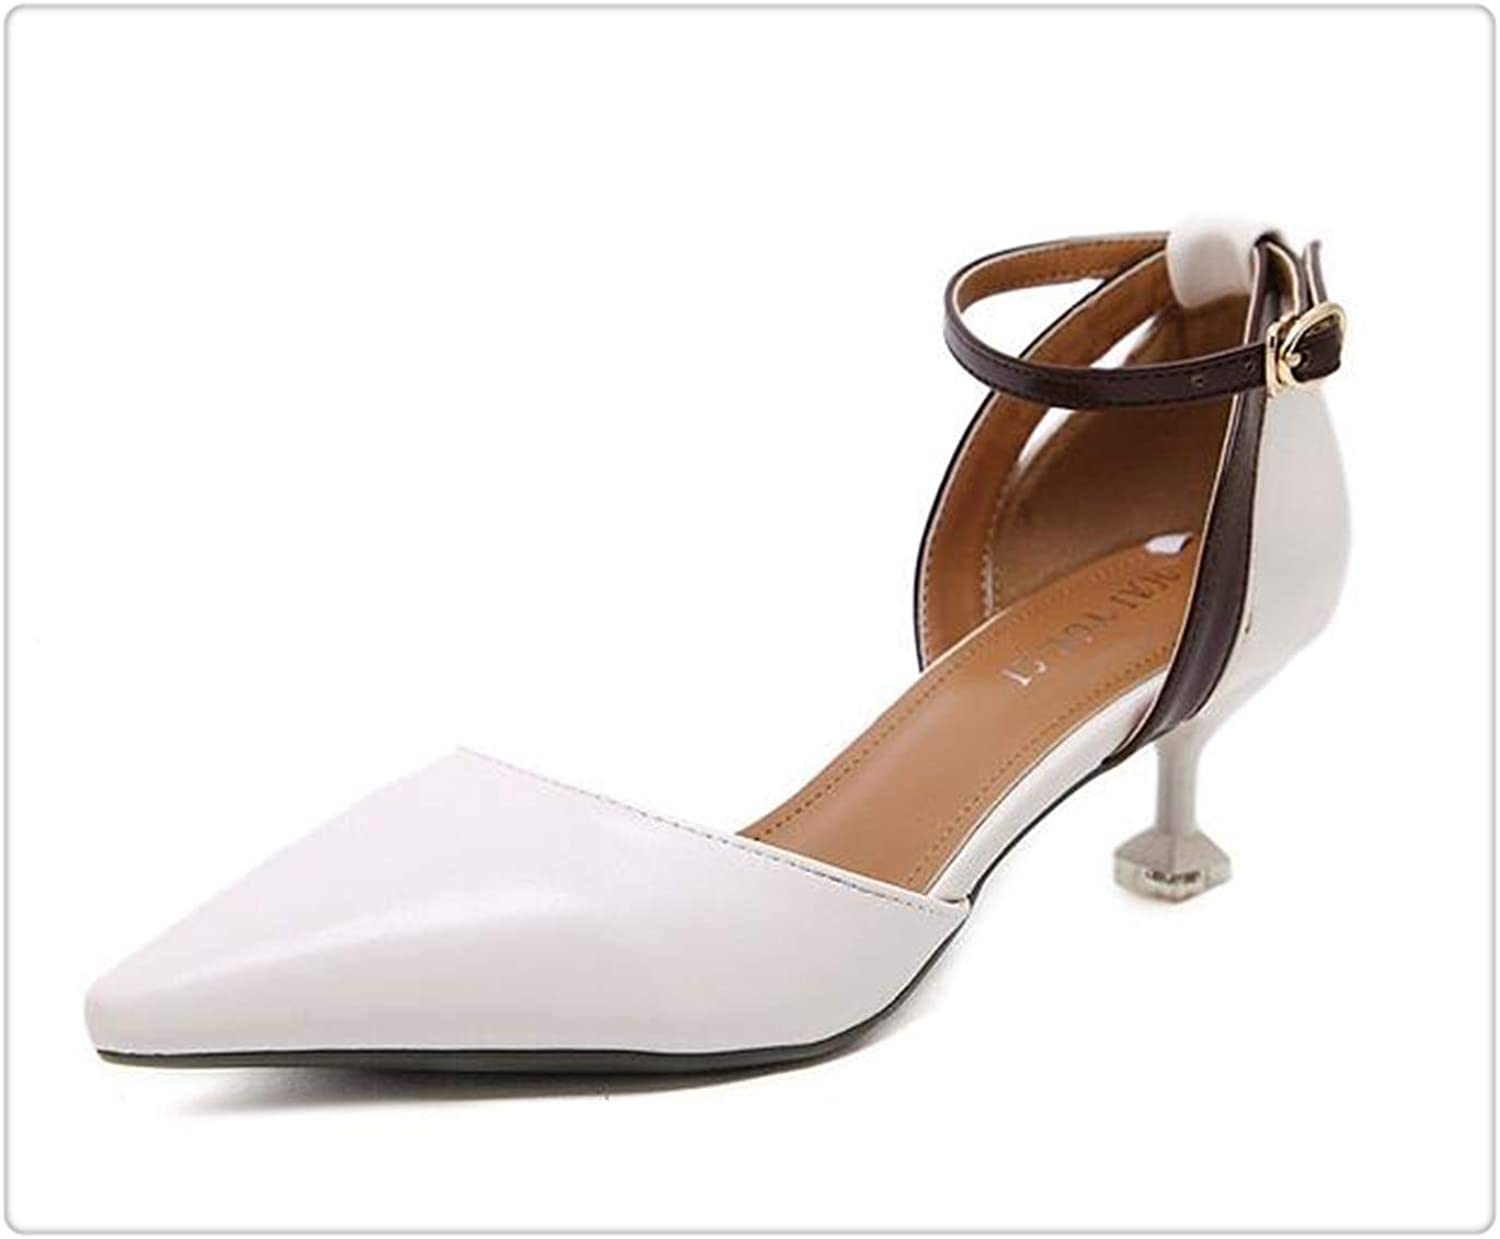 ANGERT& Sandals Woman Patchwork Wedding shoes Gladiator Pointed Toe Heels Ankle Buckle